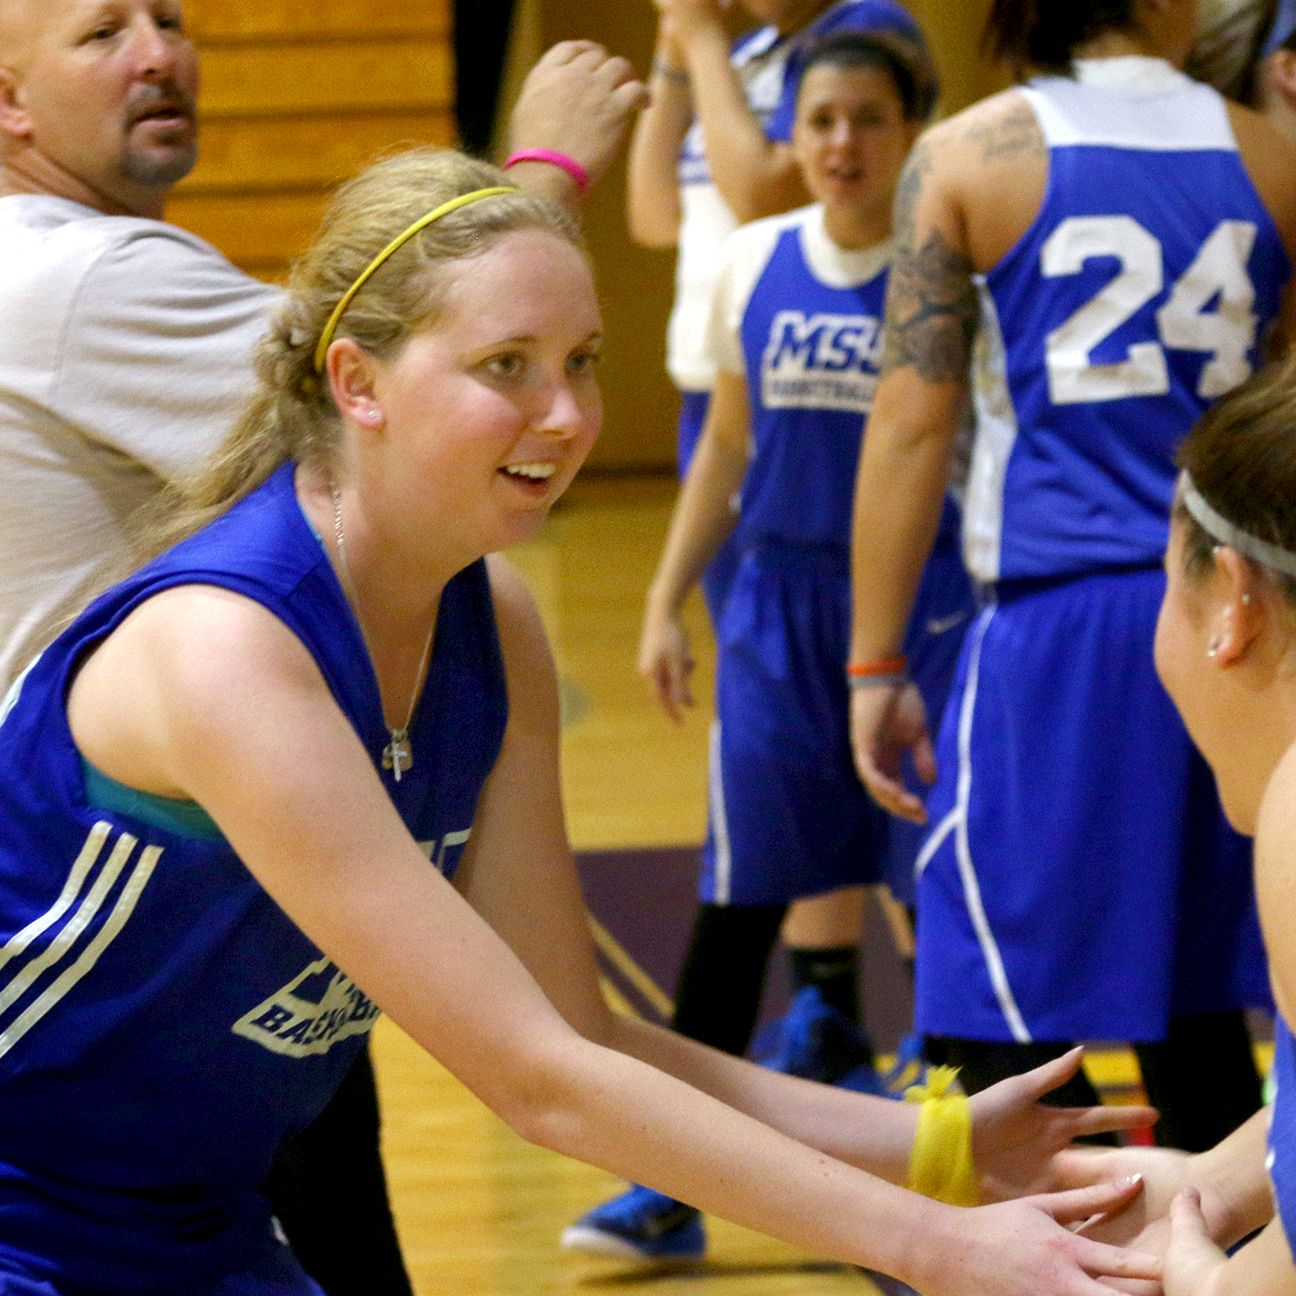 Lauren Hill, a freshman for Mount St. Joseph's with inoperable brain cancer, took a pass in the post...